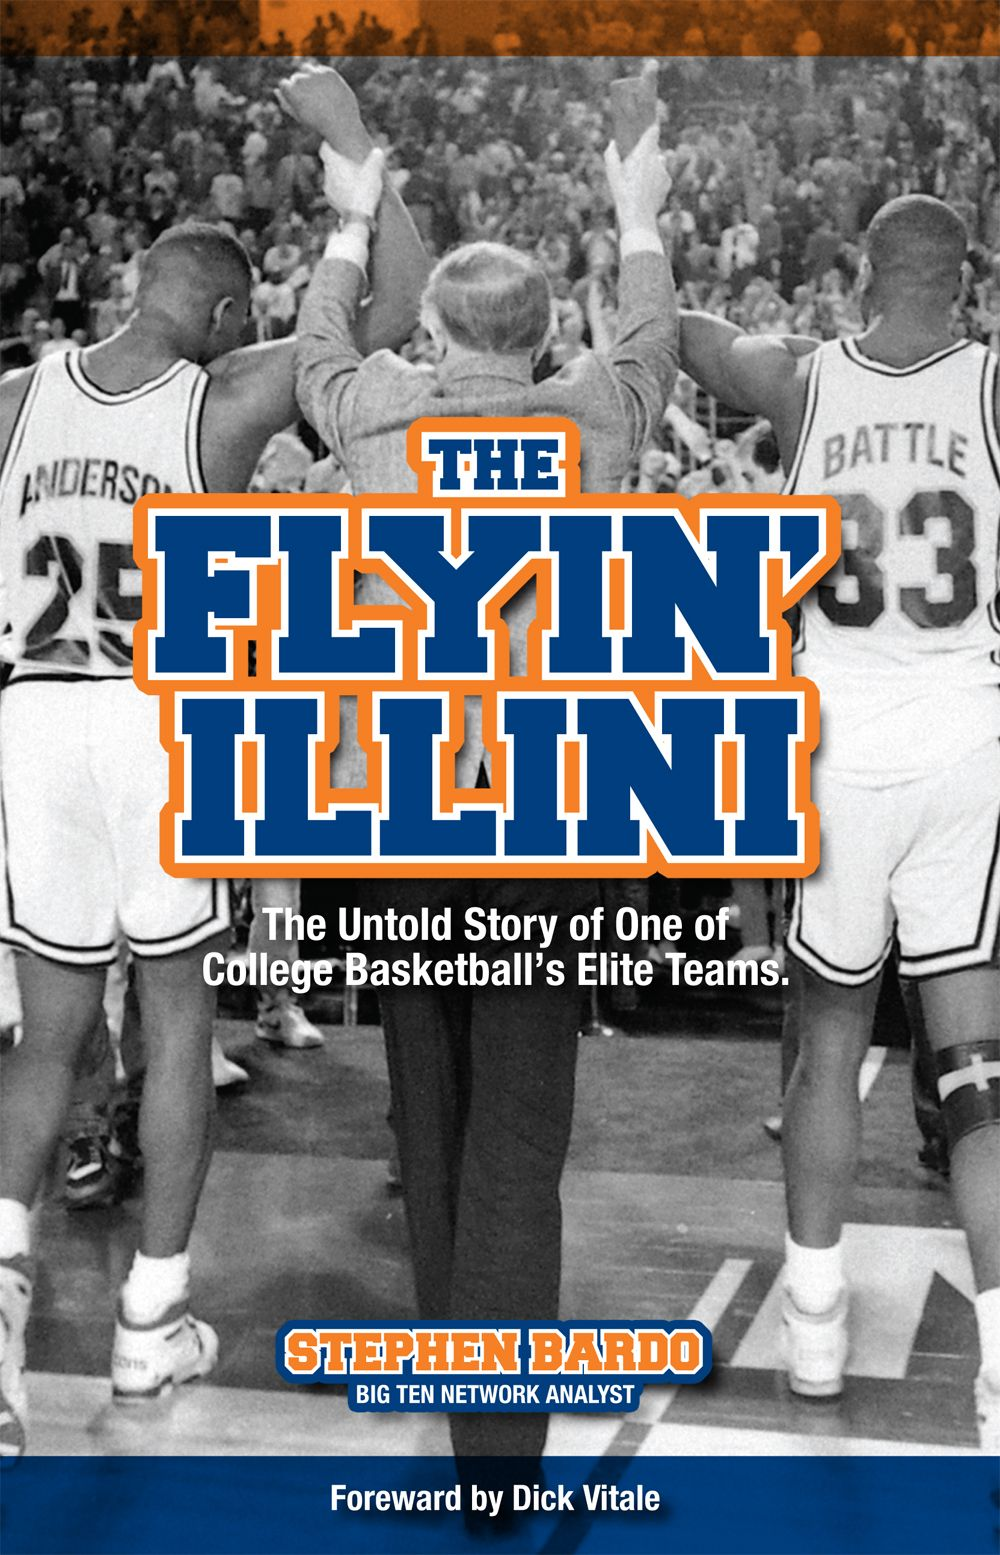 The 1989 University Of Illinois Men S Basketball Team Made A Magical Run All The Way To The College Basketball College Basketball Fans Basketball Shoes For Men